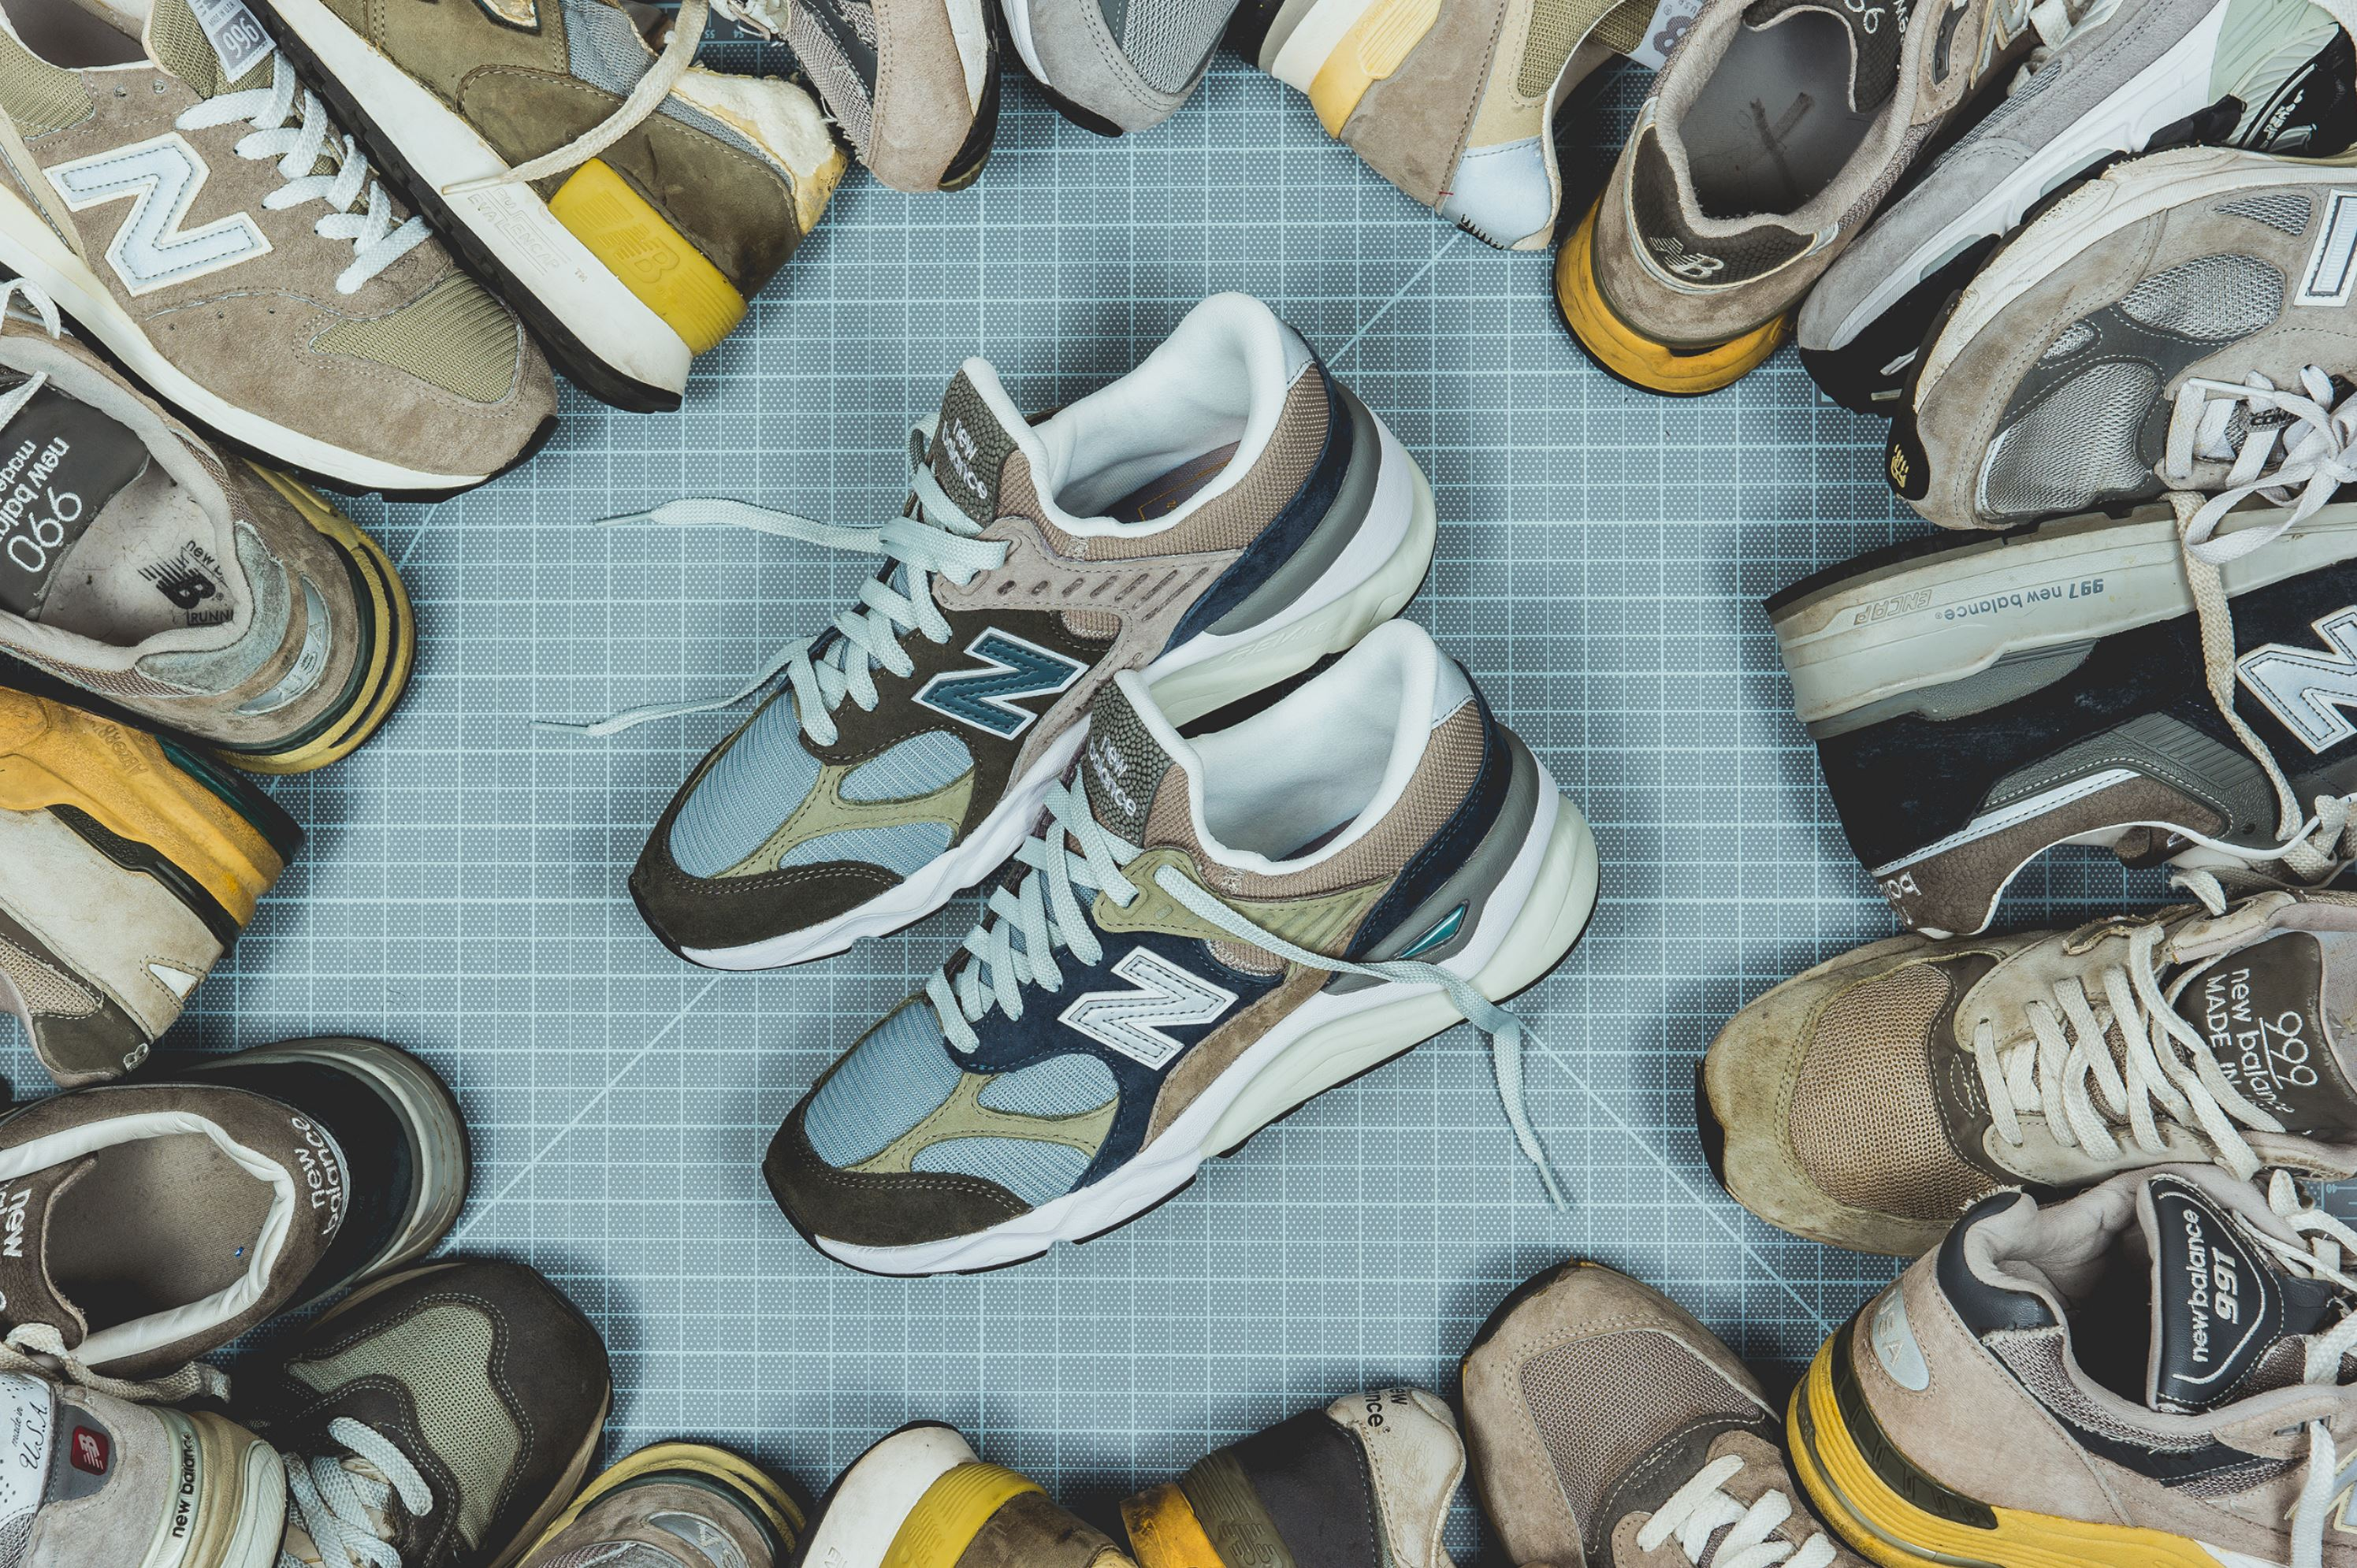 packer new balance X90 recon infinity edition 4